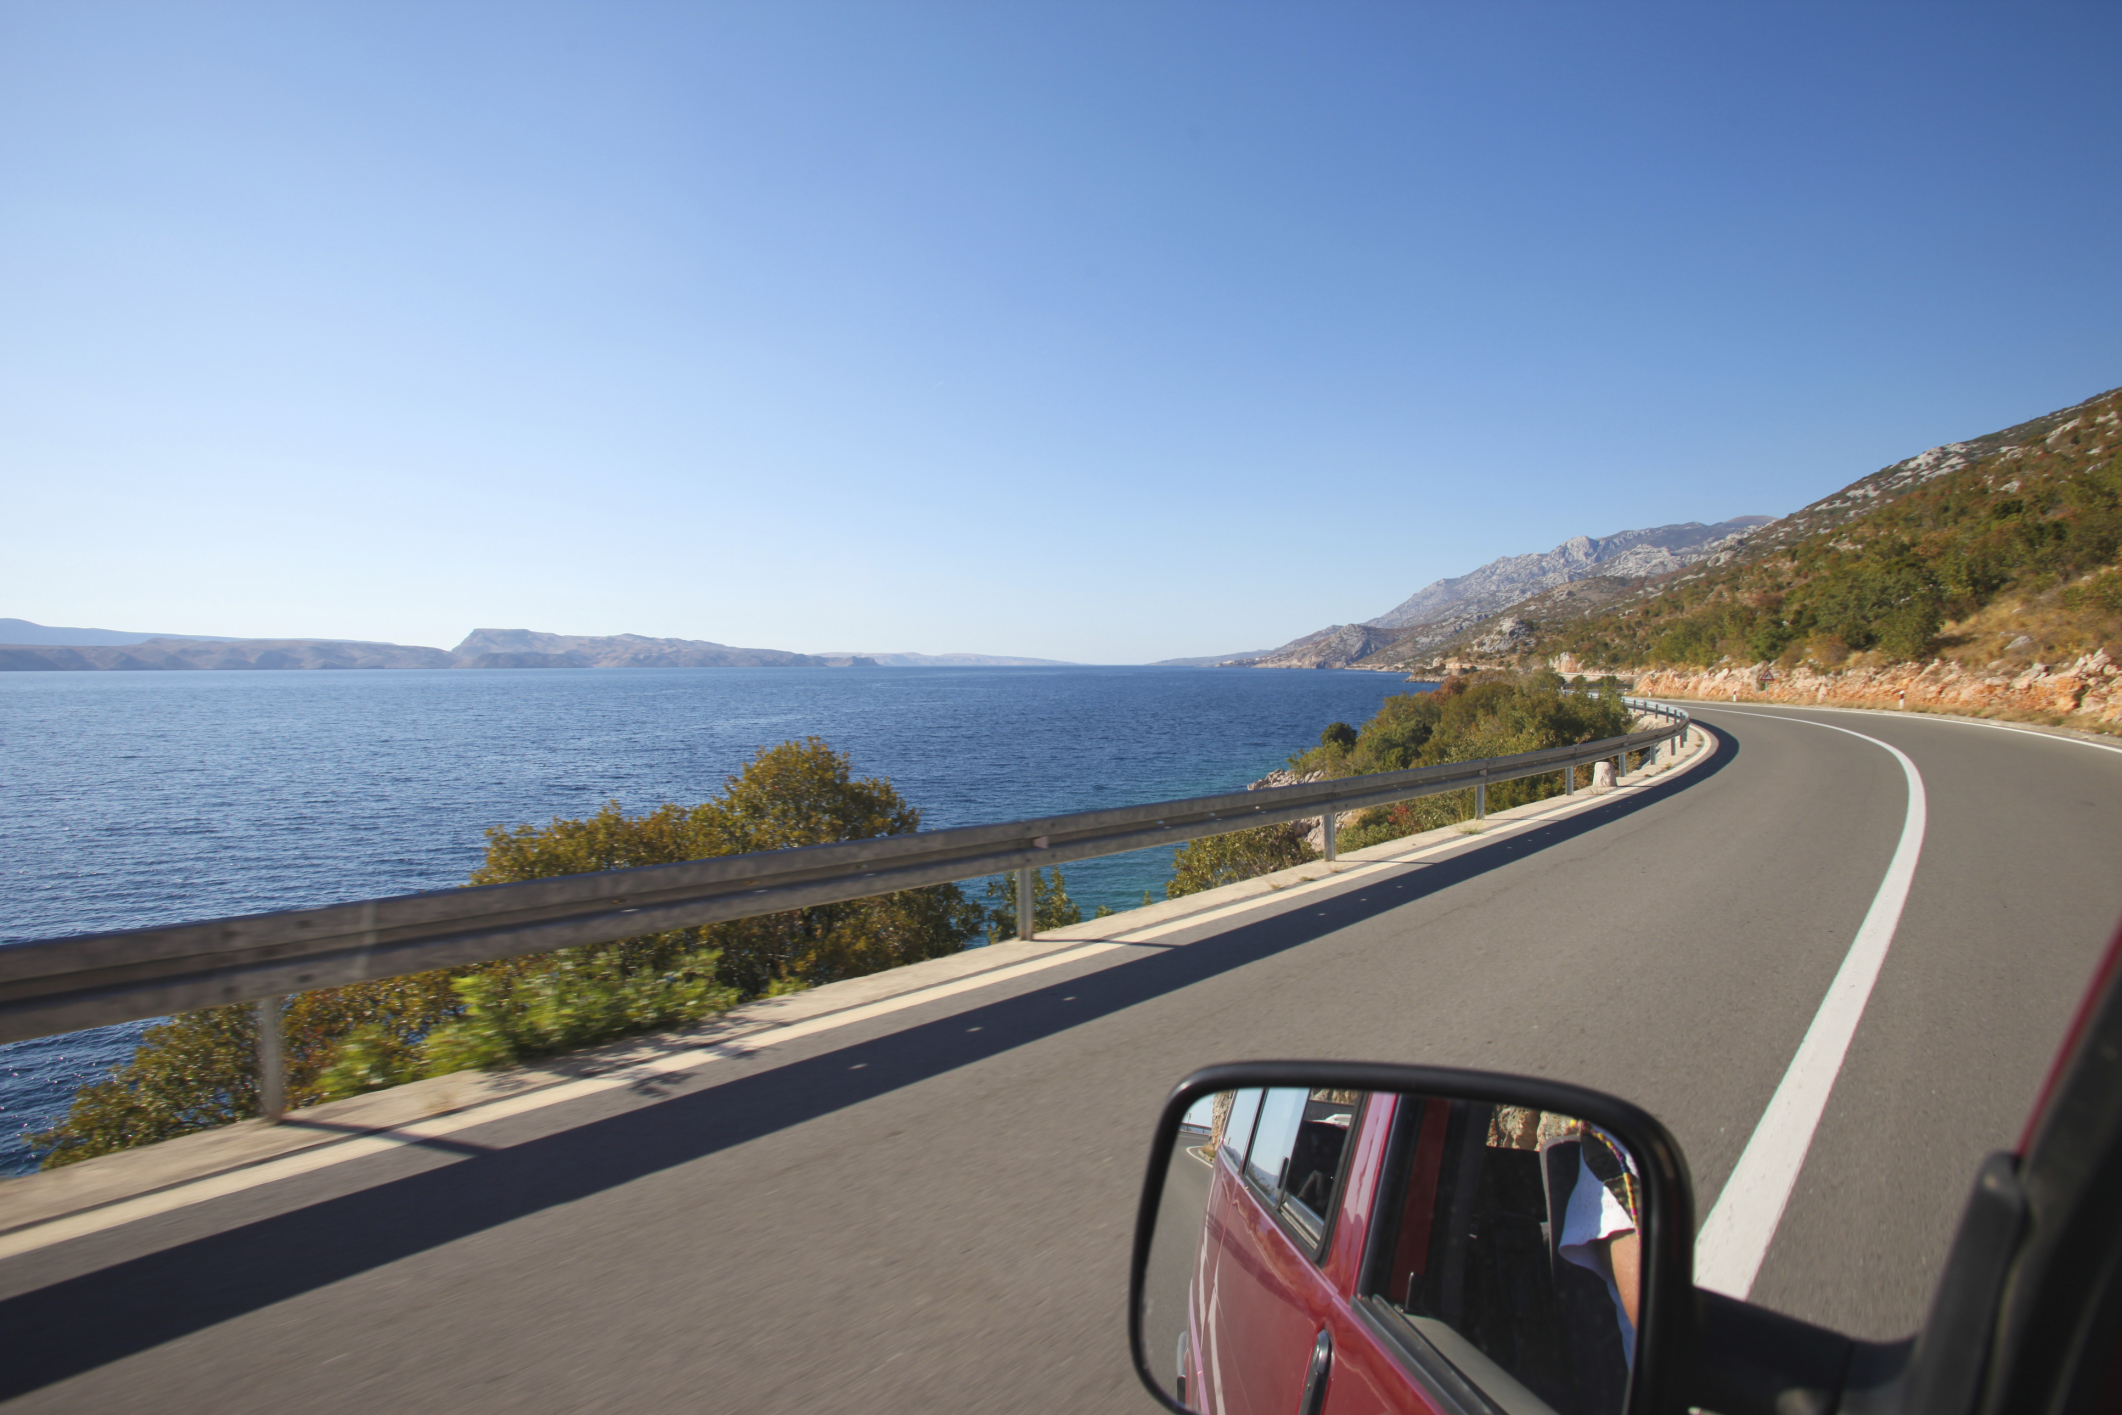 A few tips to follow for end-of-summer road trips